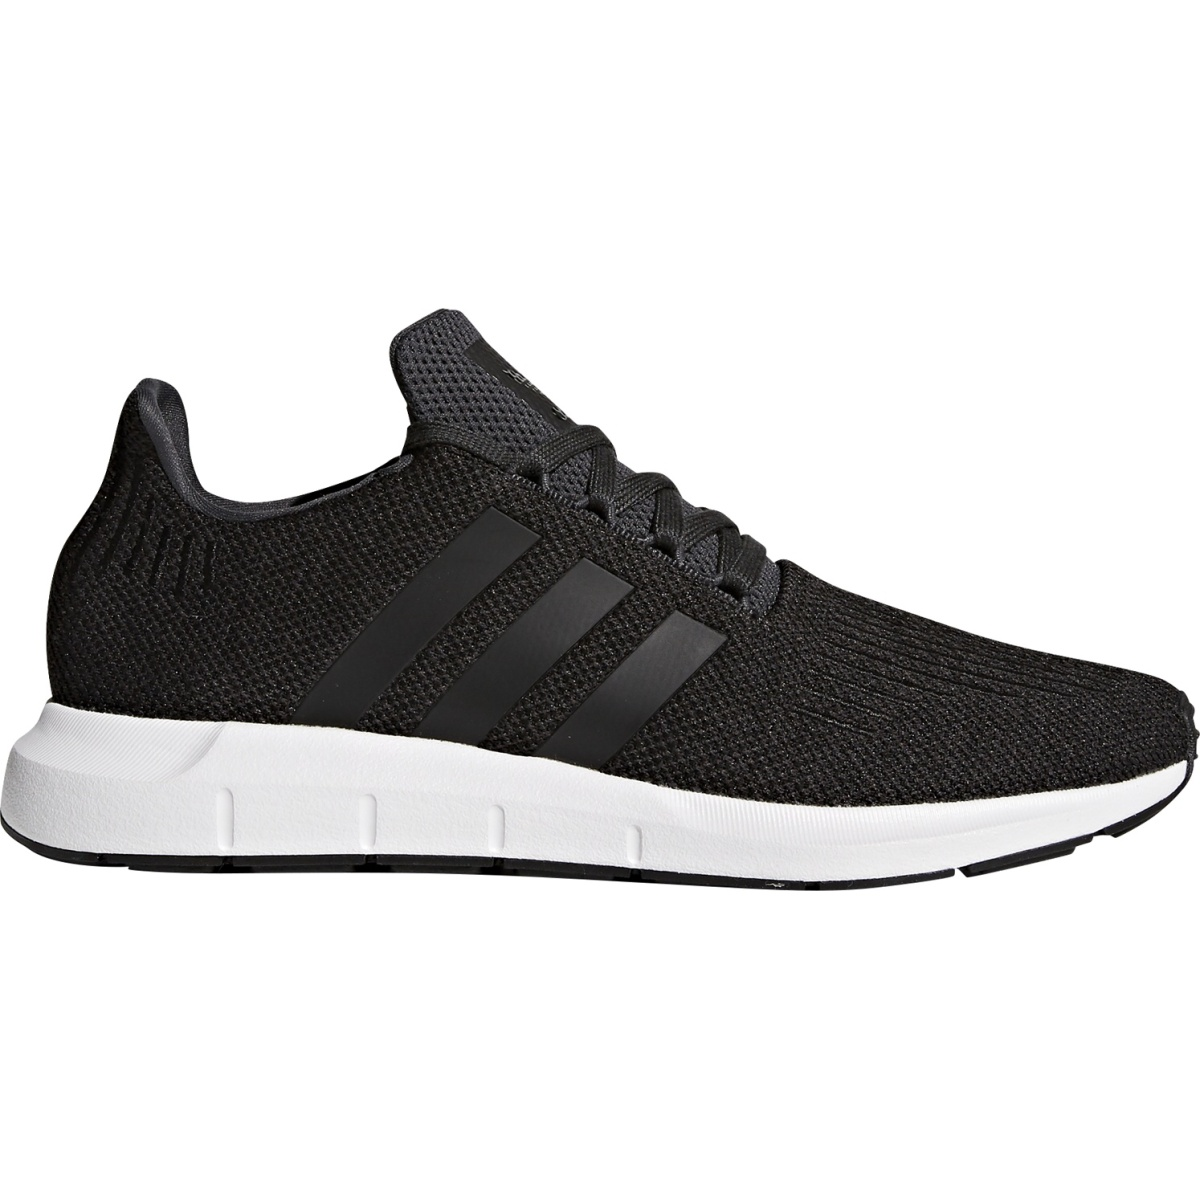 adidas Swift Run šedá EUR 44 46339beb67